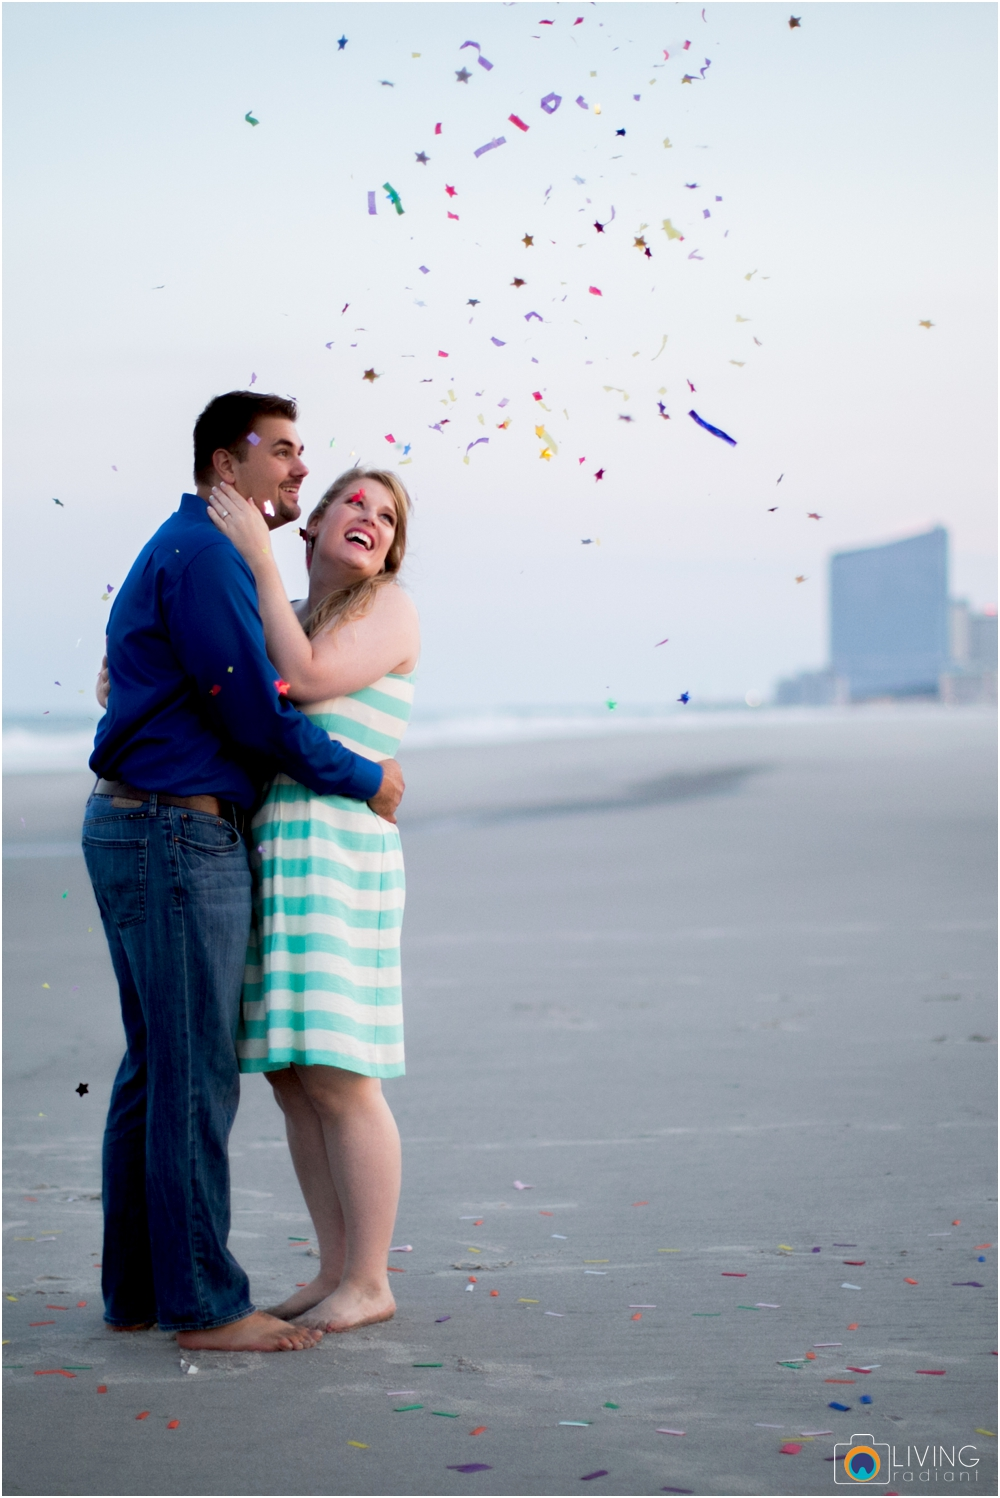 brigintine-atlantic-city-engagement-session-beach-outdoor-nautical-engagement-ocean-water-photos-living-radiant-photography_0046.jpg